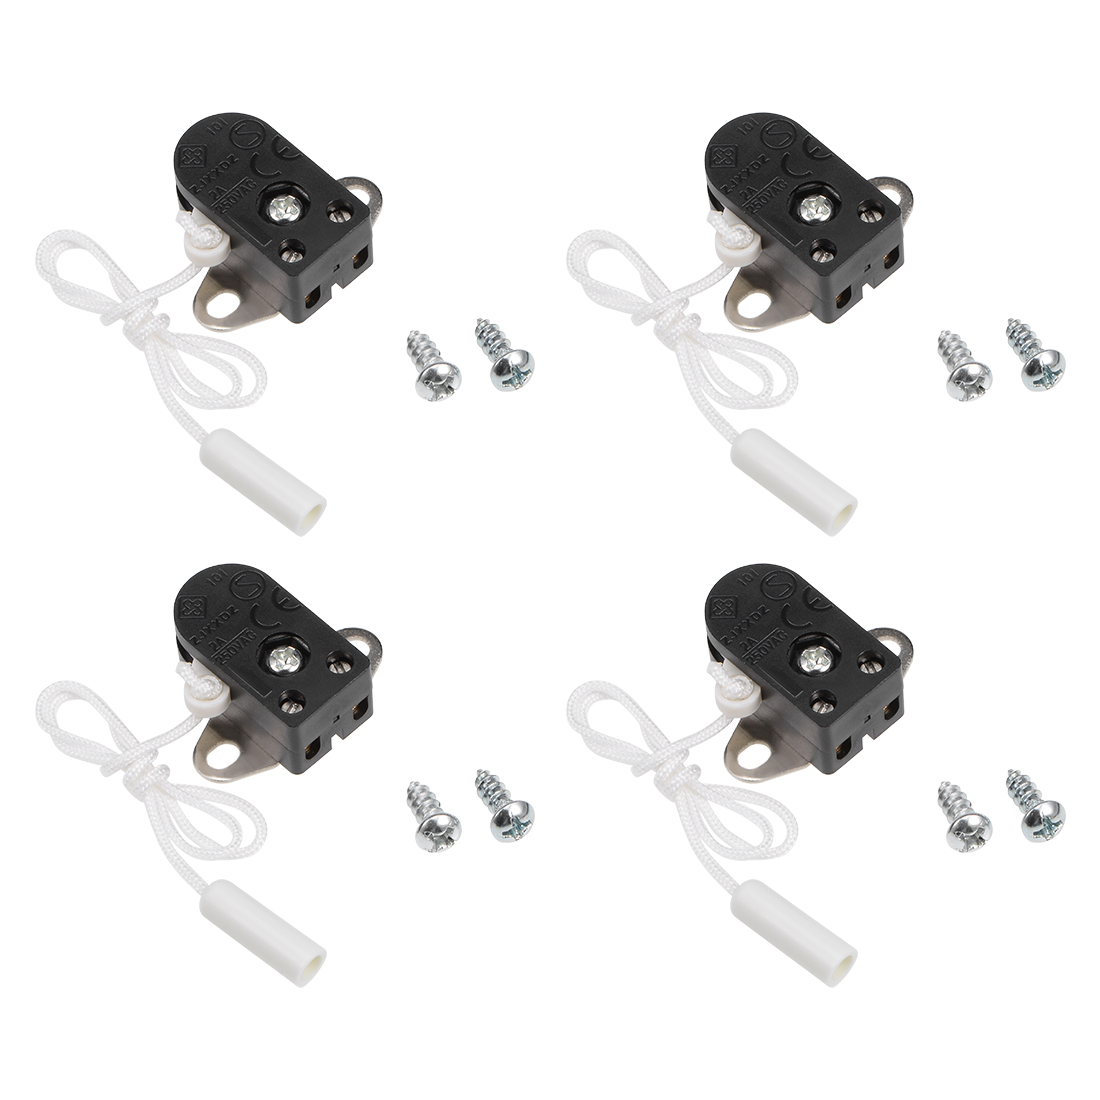 Pull Switch SPST AC 250V 2A for Ceiling Fan Light Lamp with 25cm Pull Chain 4pcs